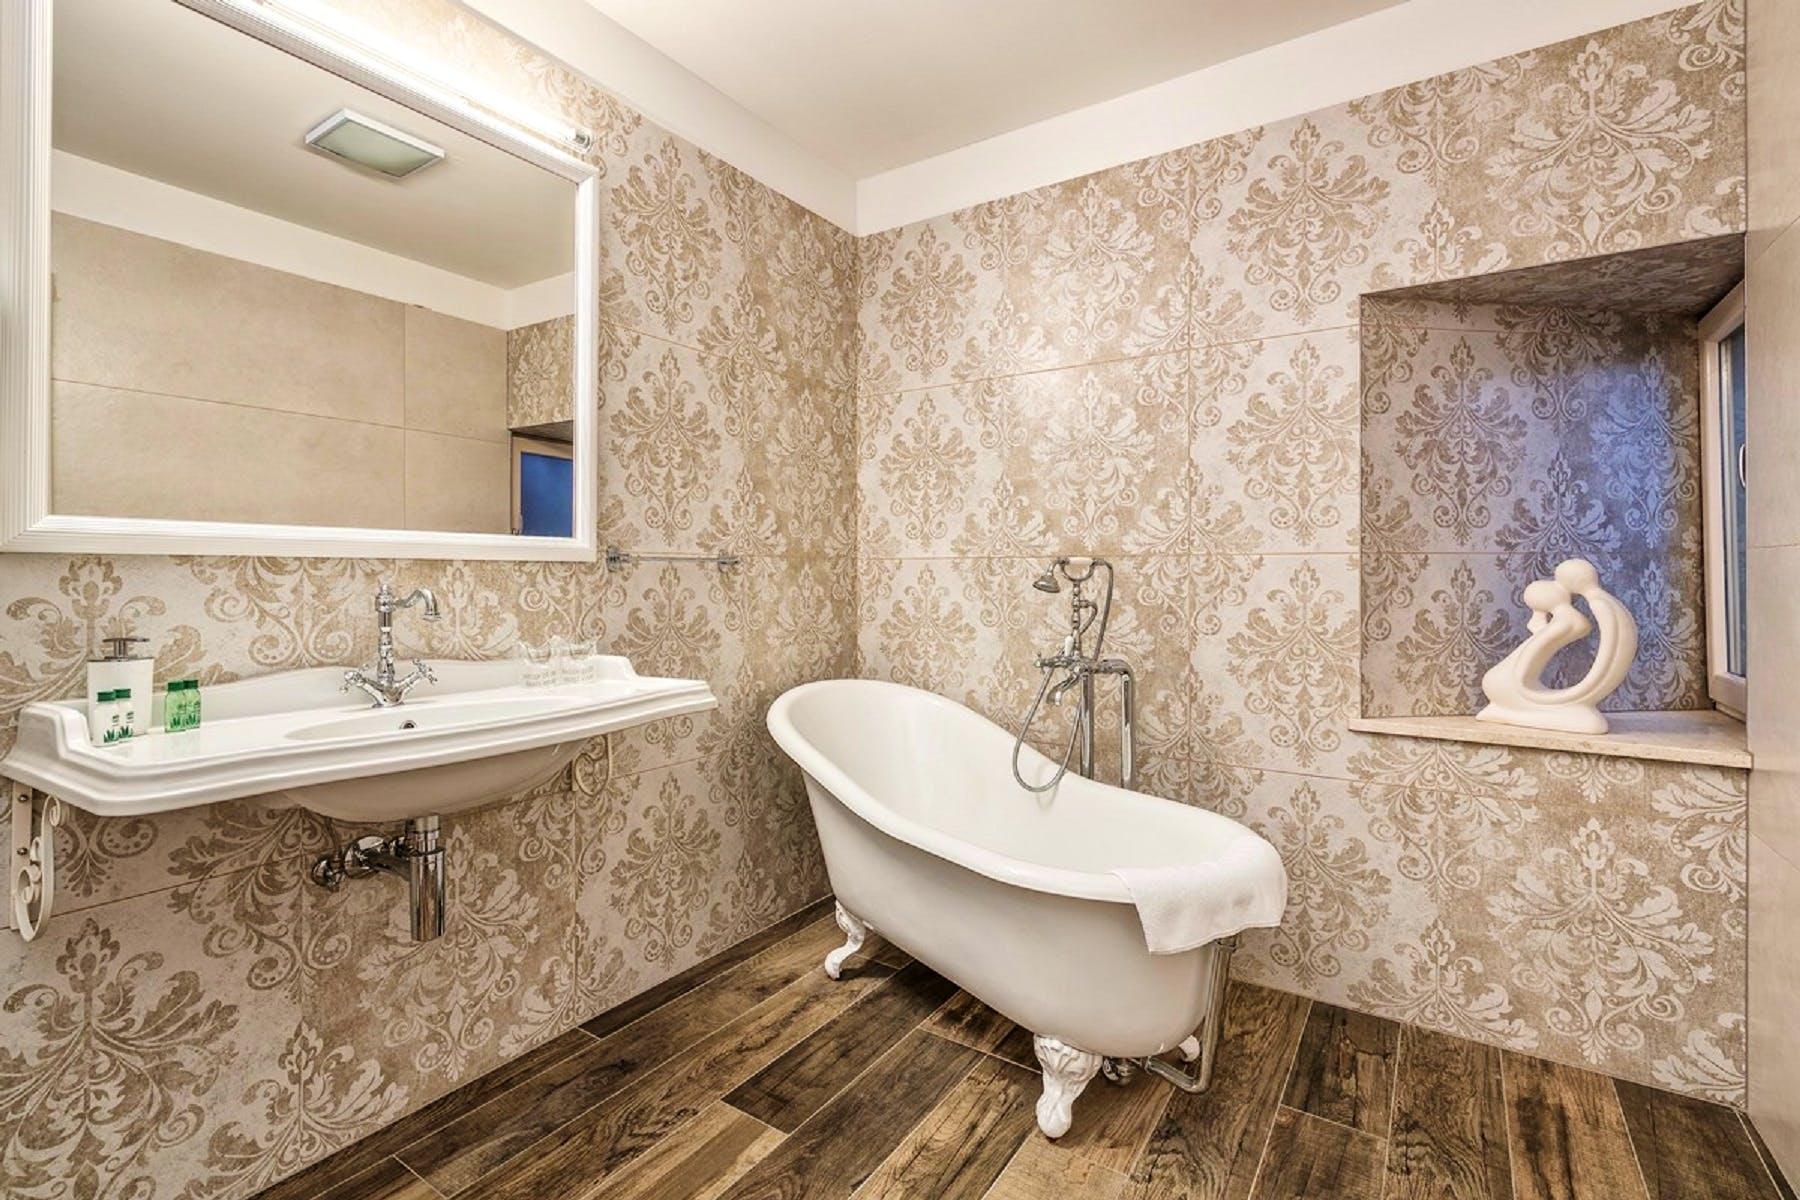 Bathroom following the overall style